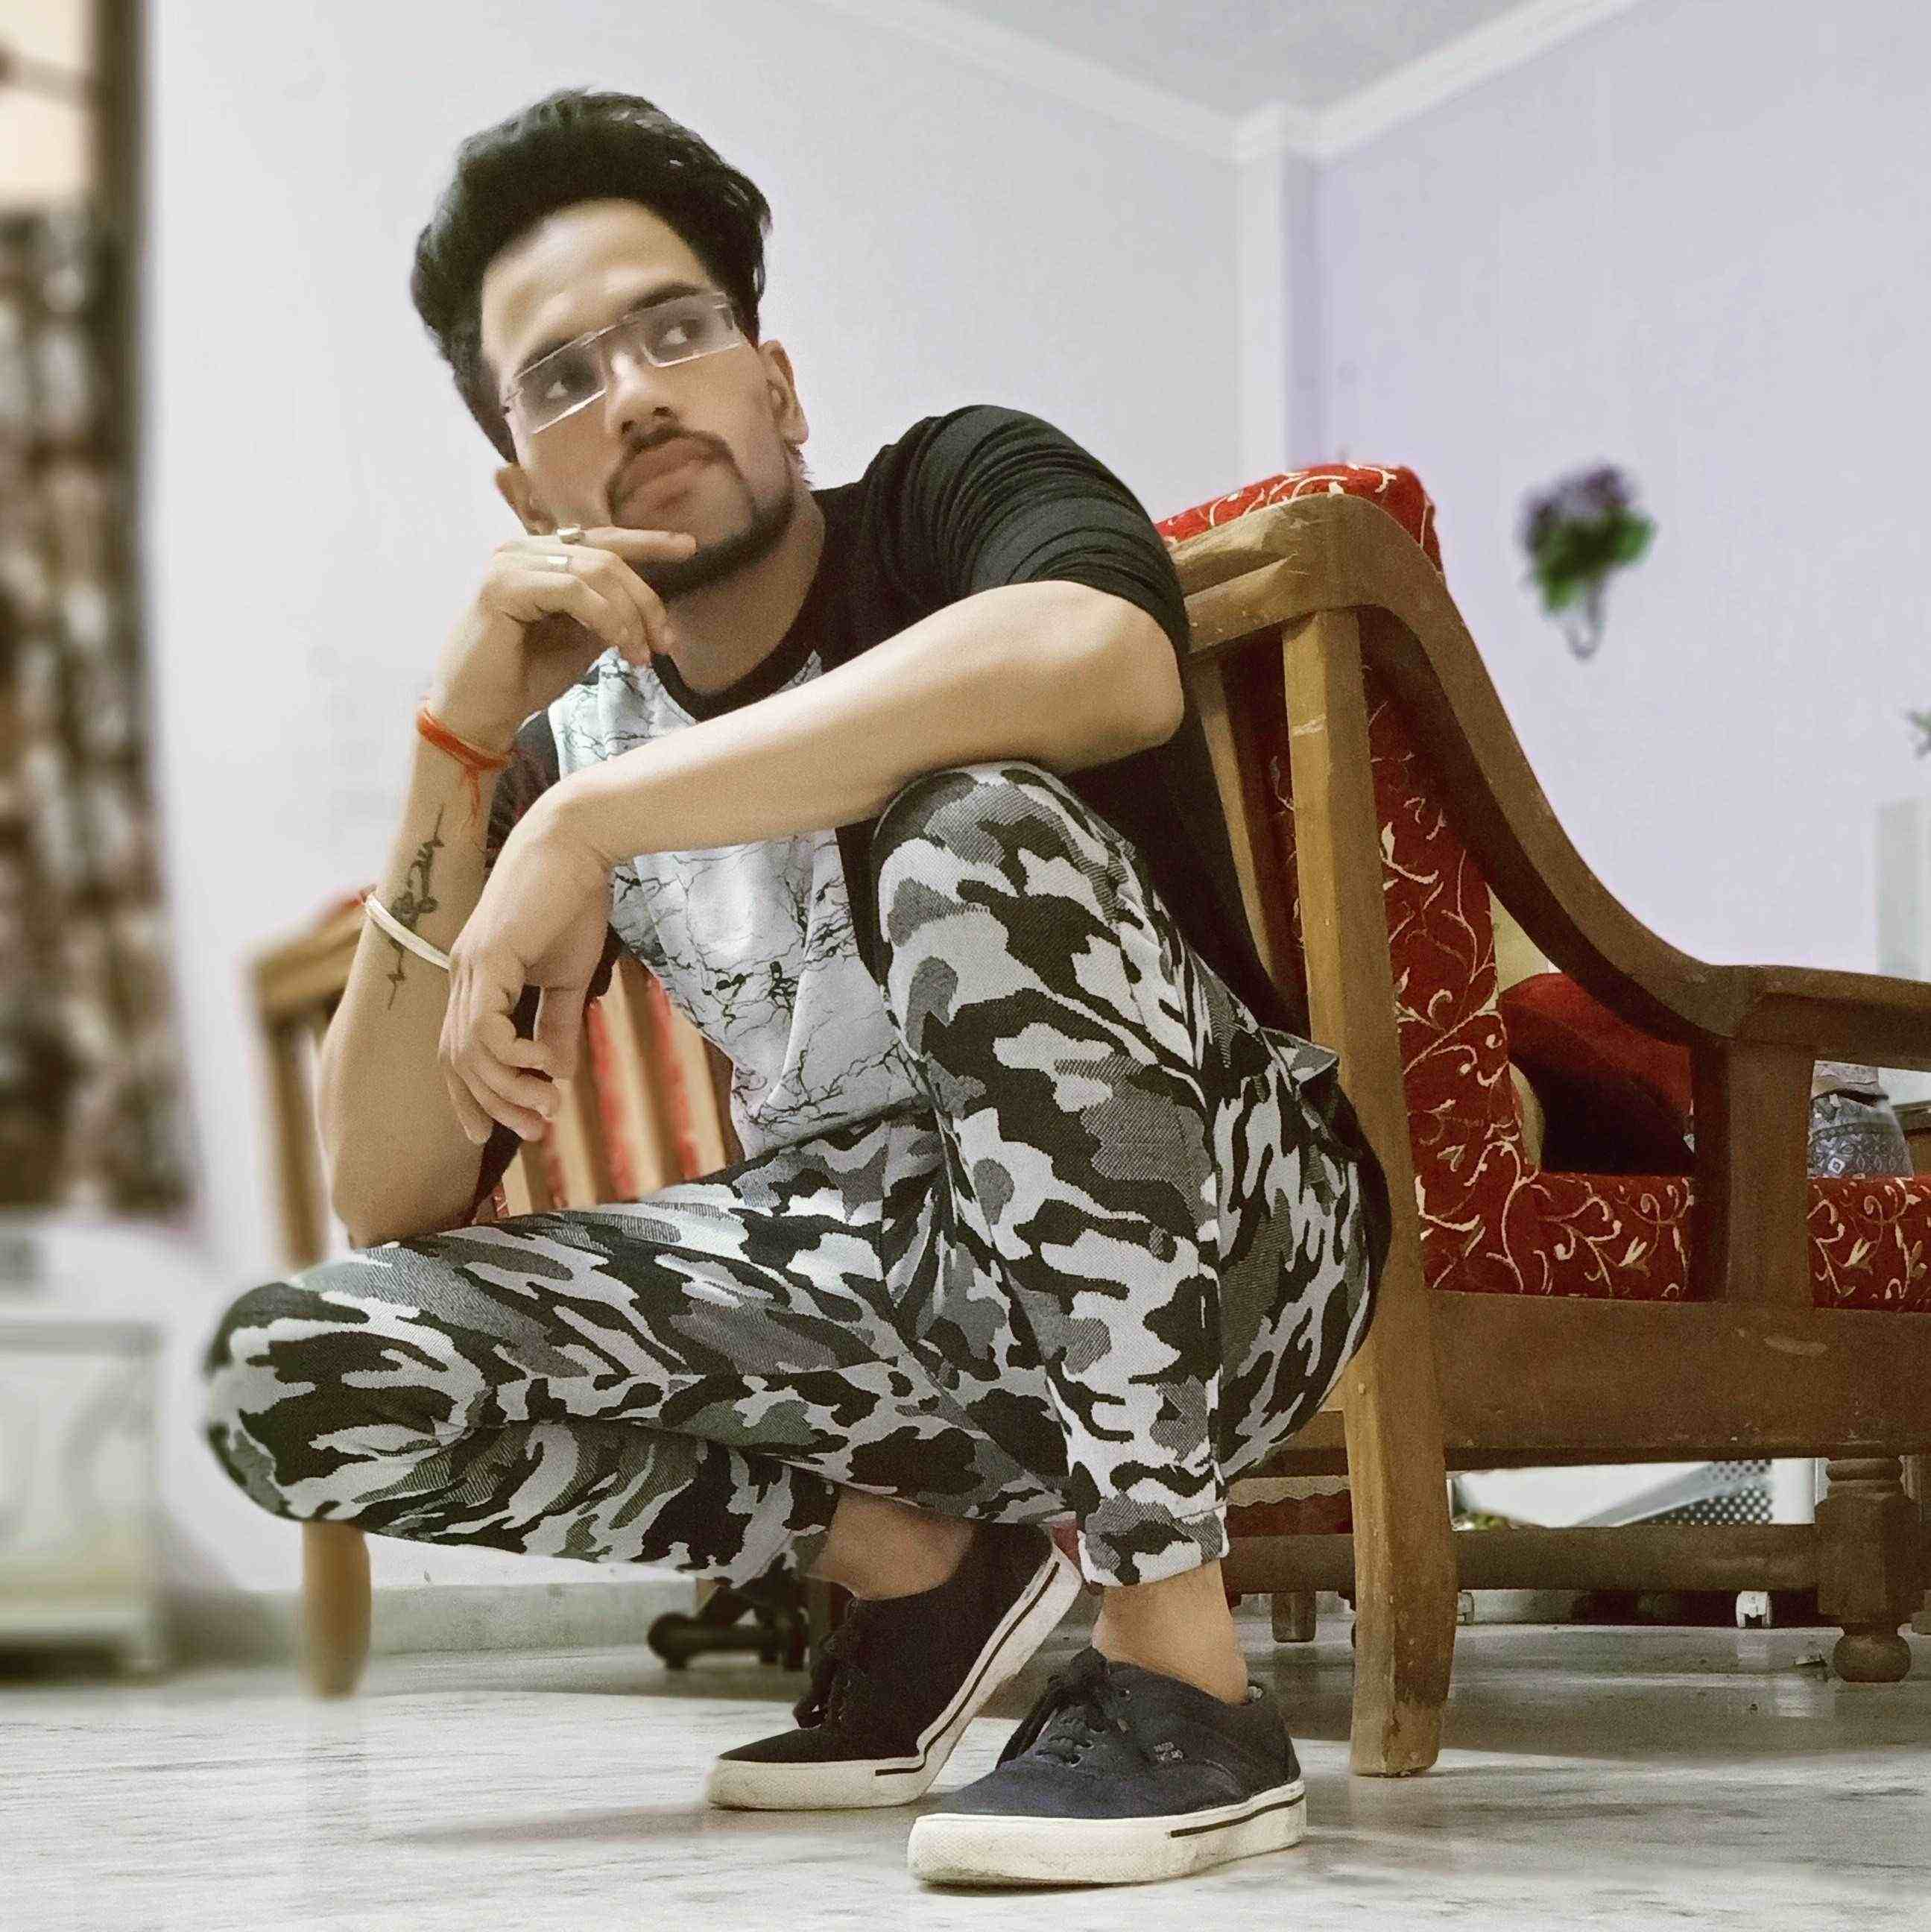 Raftaar Chopra singer rapper song writter❤